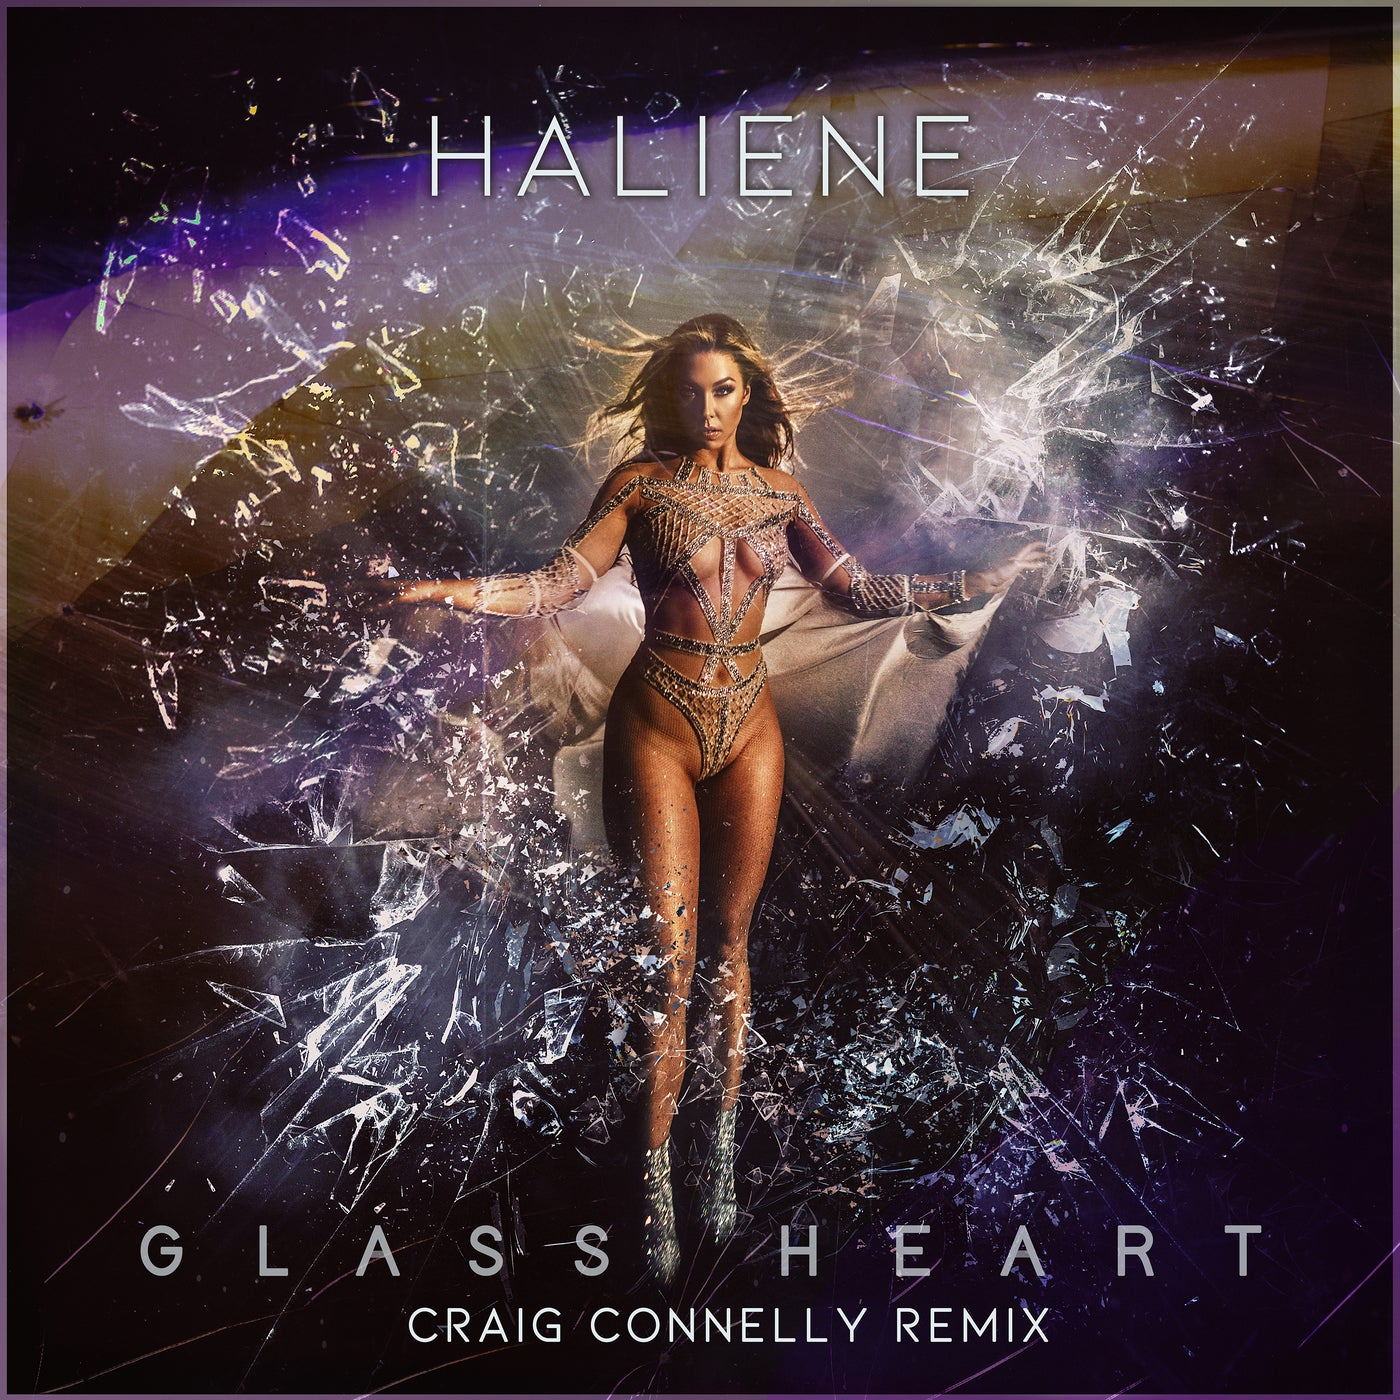 Glass Heart (Craig Connelly Extended Remix)